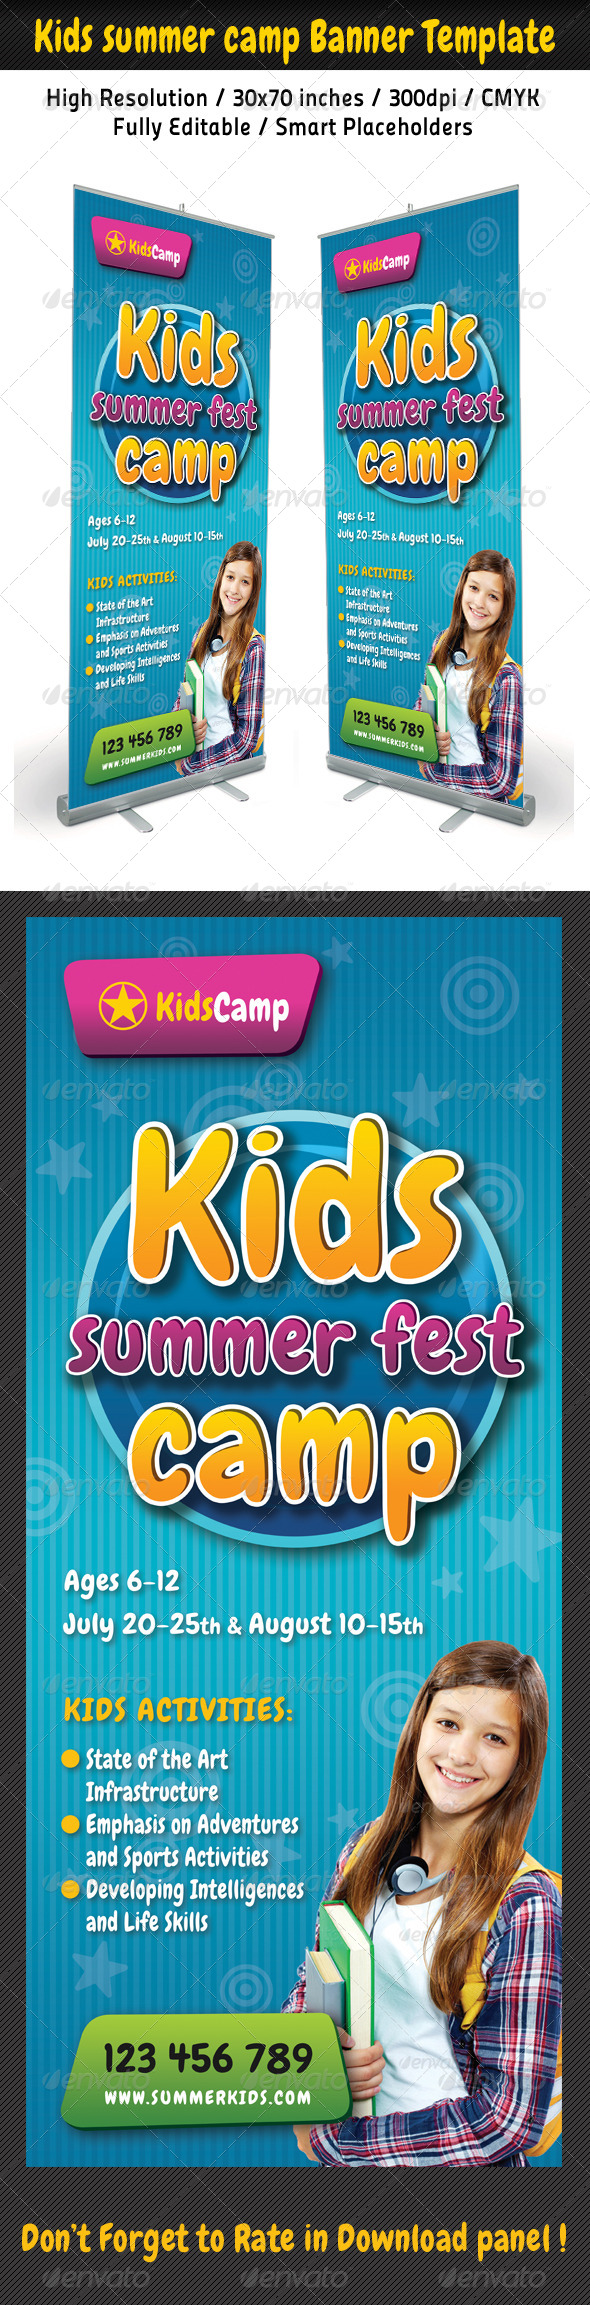 Kids Summer Camp Banner Template 02